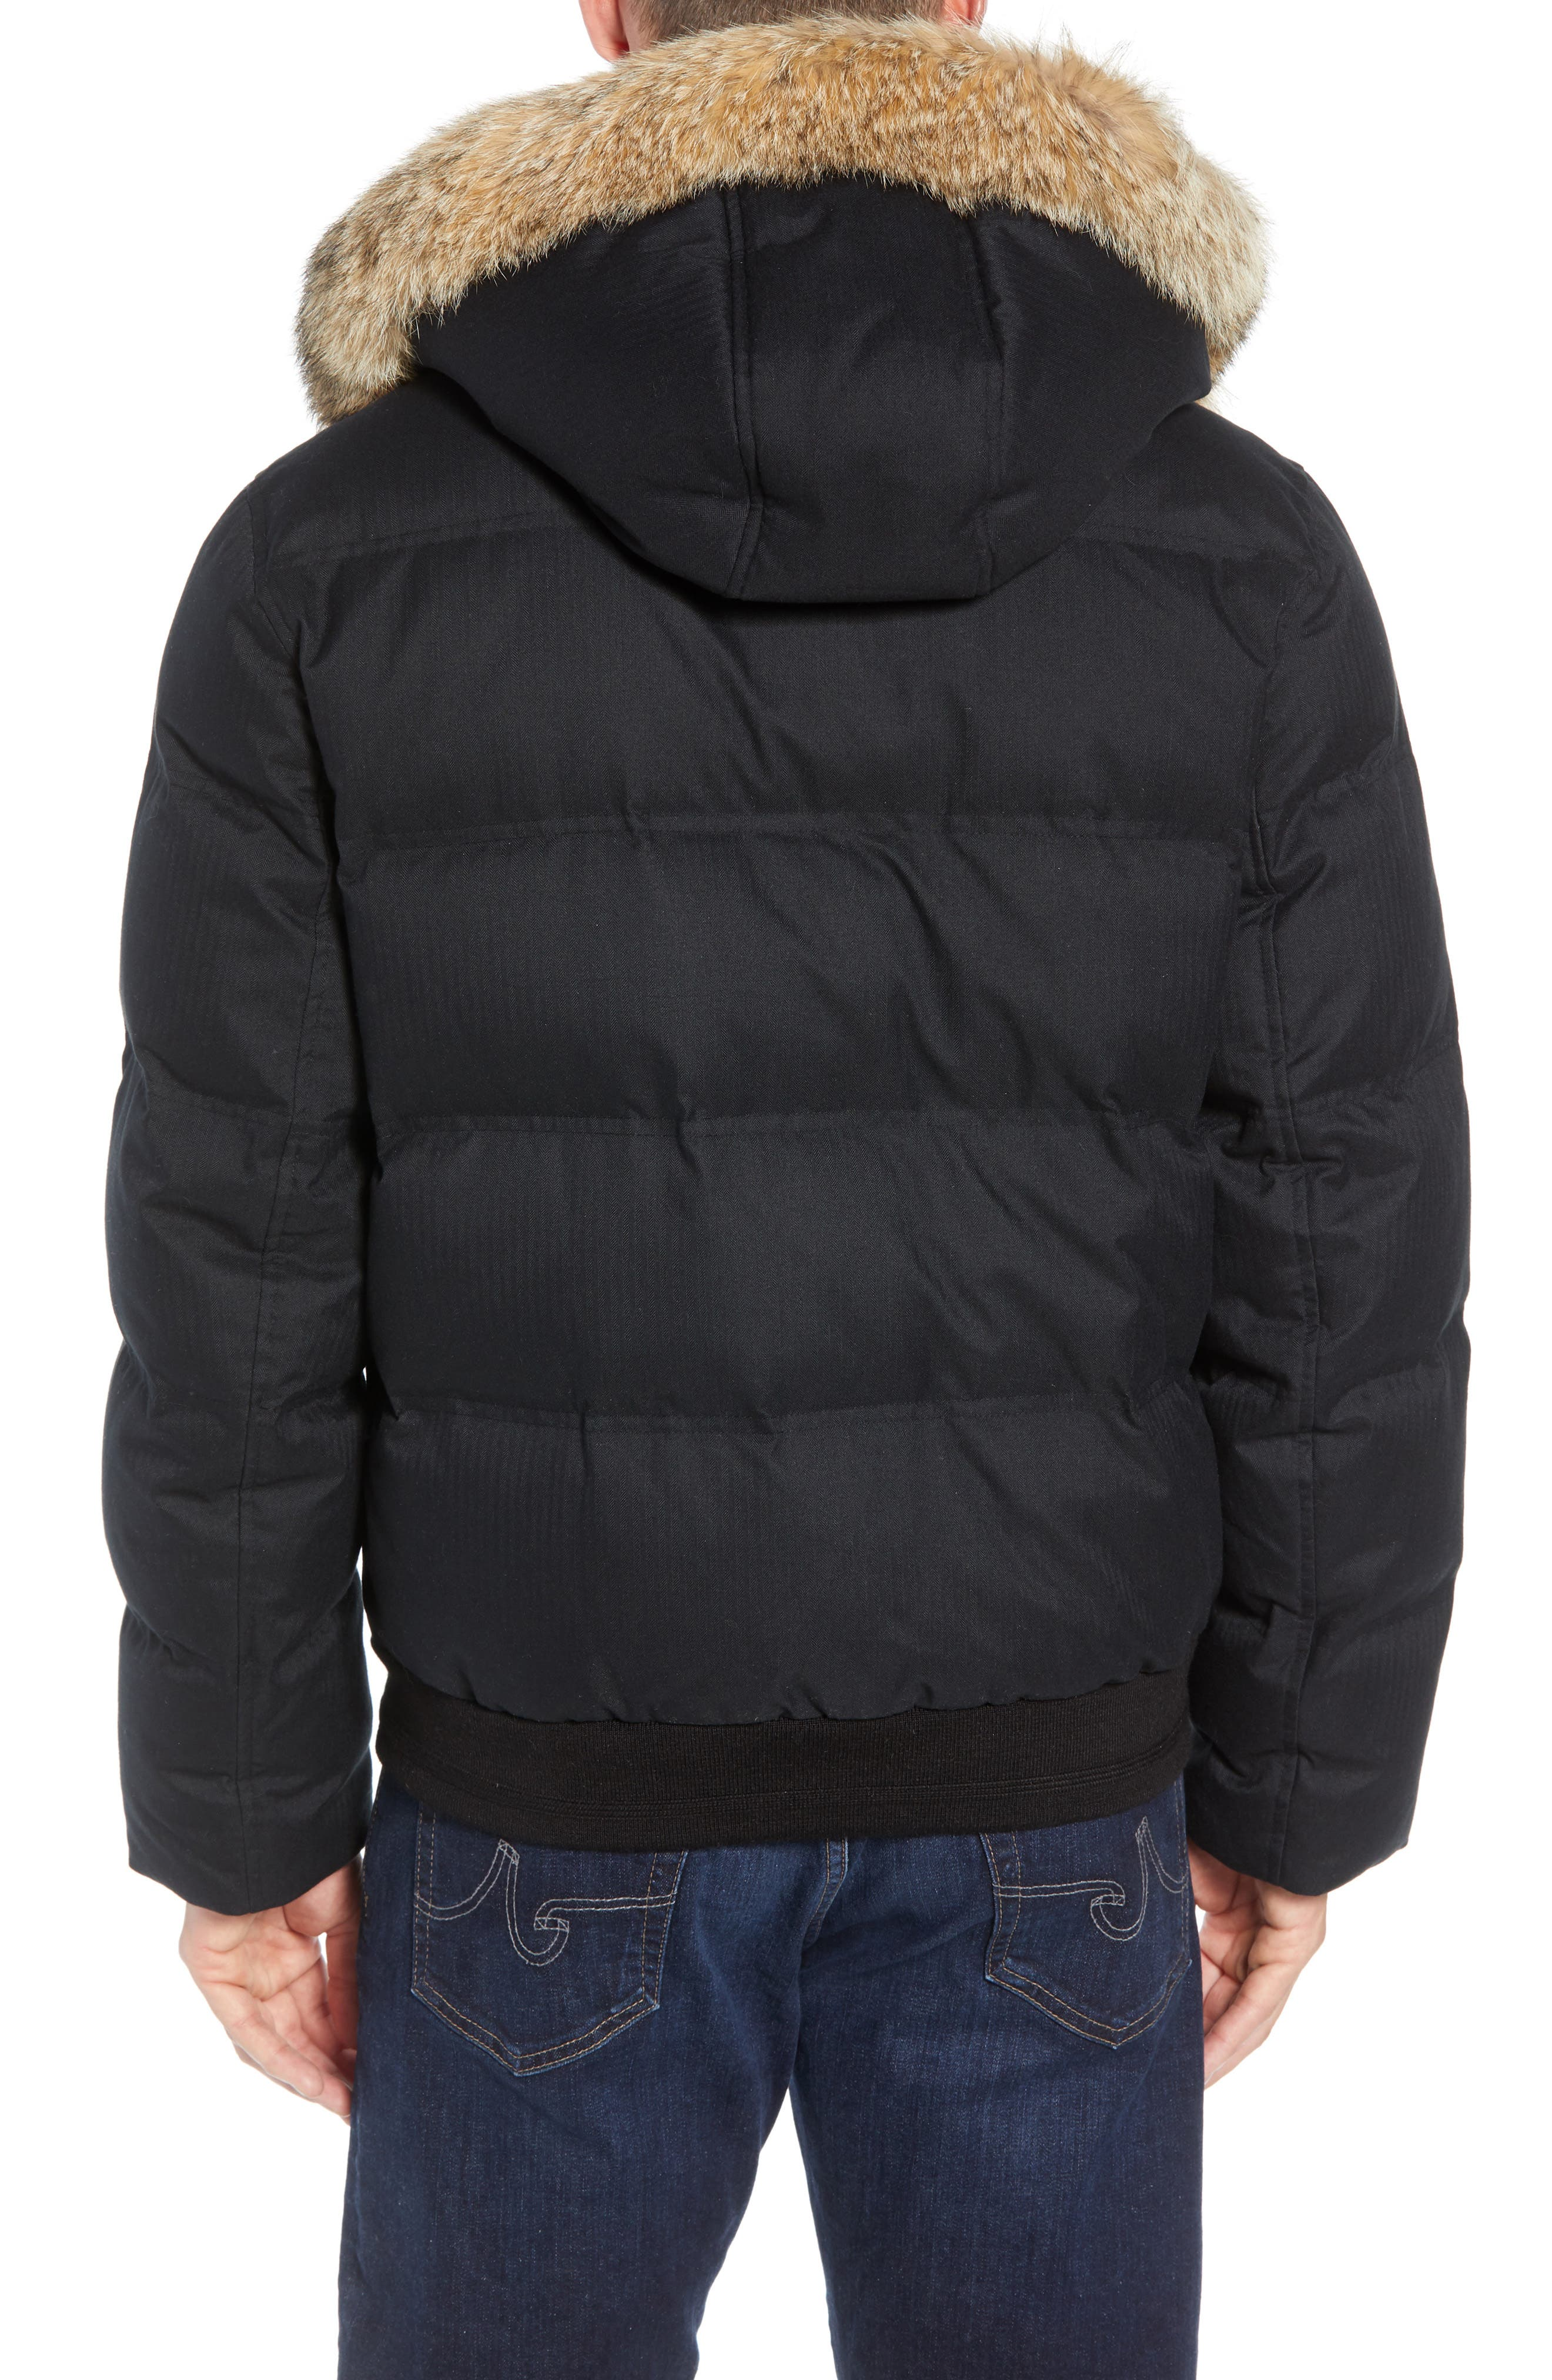 Bohlen Down & Feather Bomber Jacket with Removable Genuine Coyote Fur Trim Hood,                             Alternate thumbnail 3, color,                             BLACK